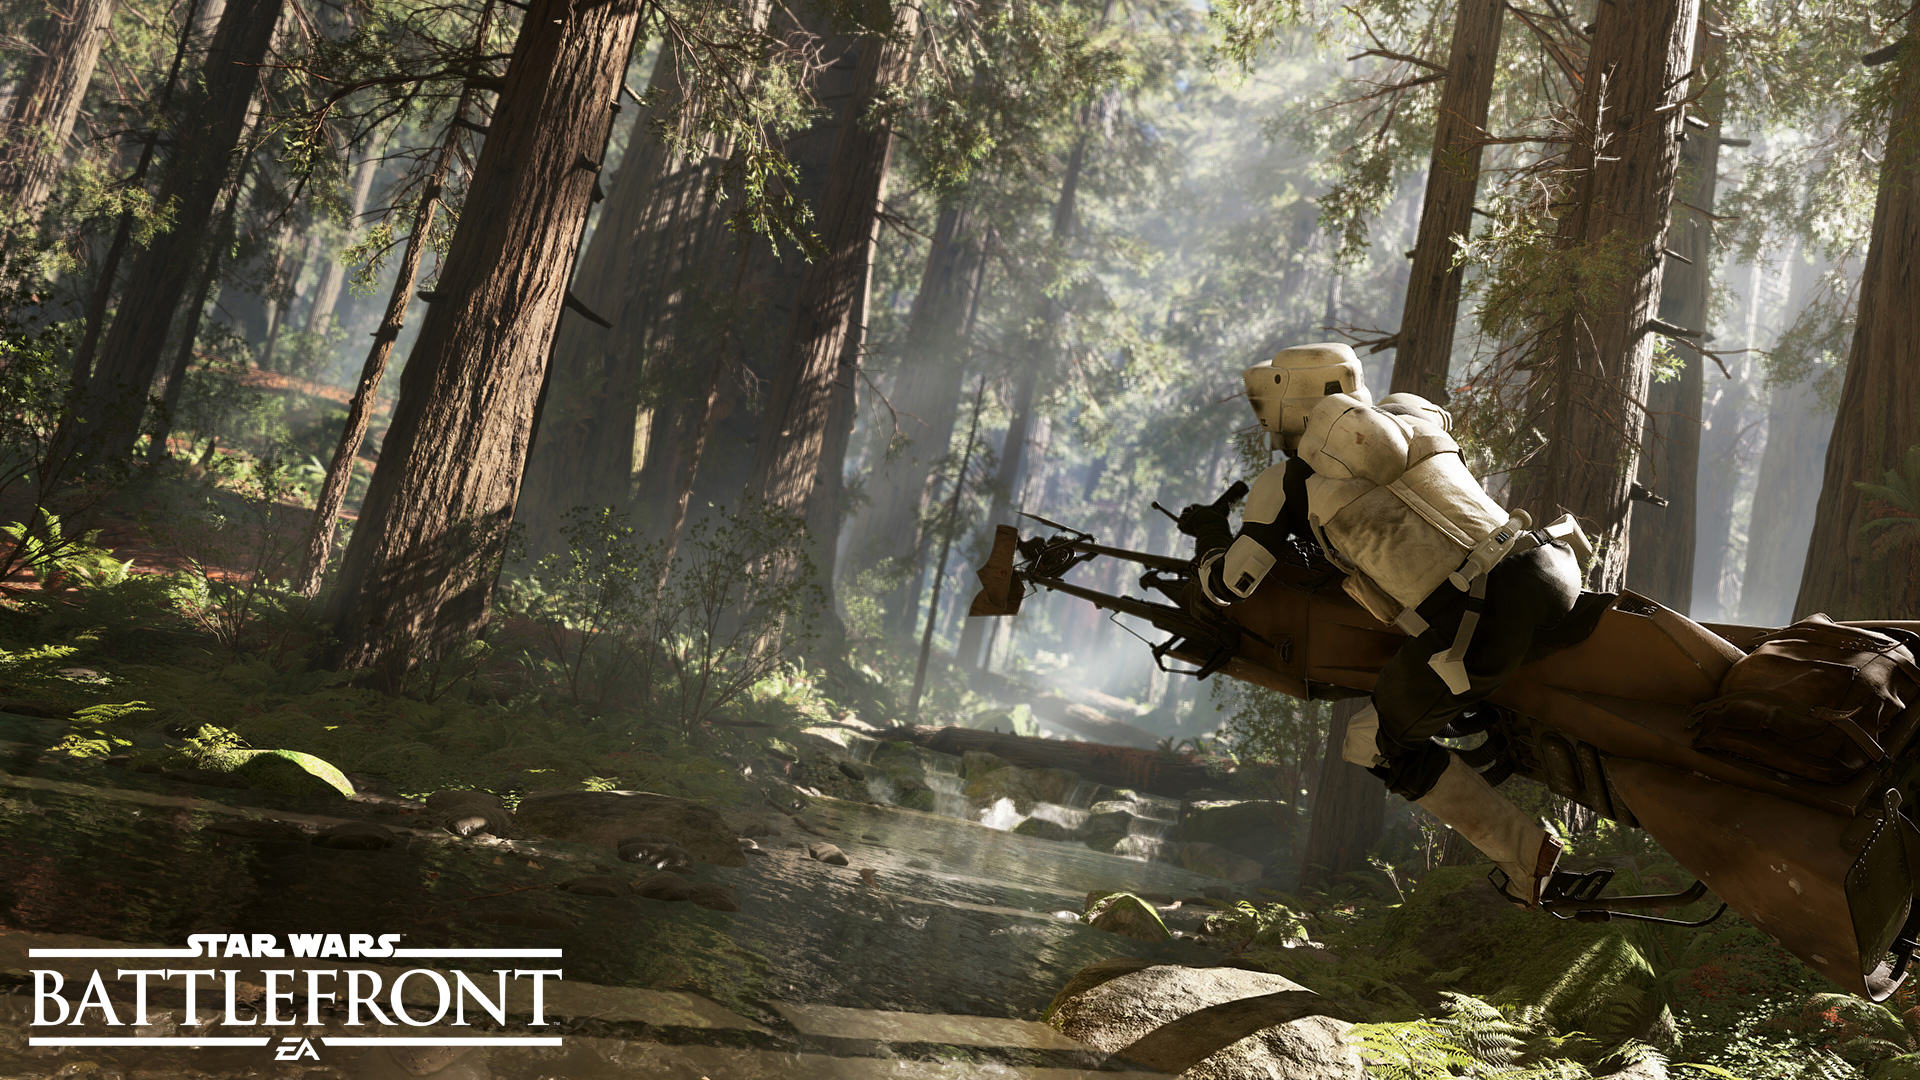 UNILAD 8htMNBk Imgur3 Star Wars: Battlefront Looks Stunning In These Desktop Backgrounds And Images